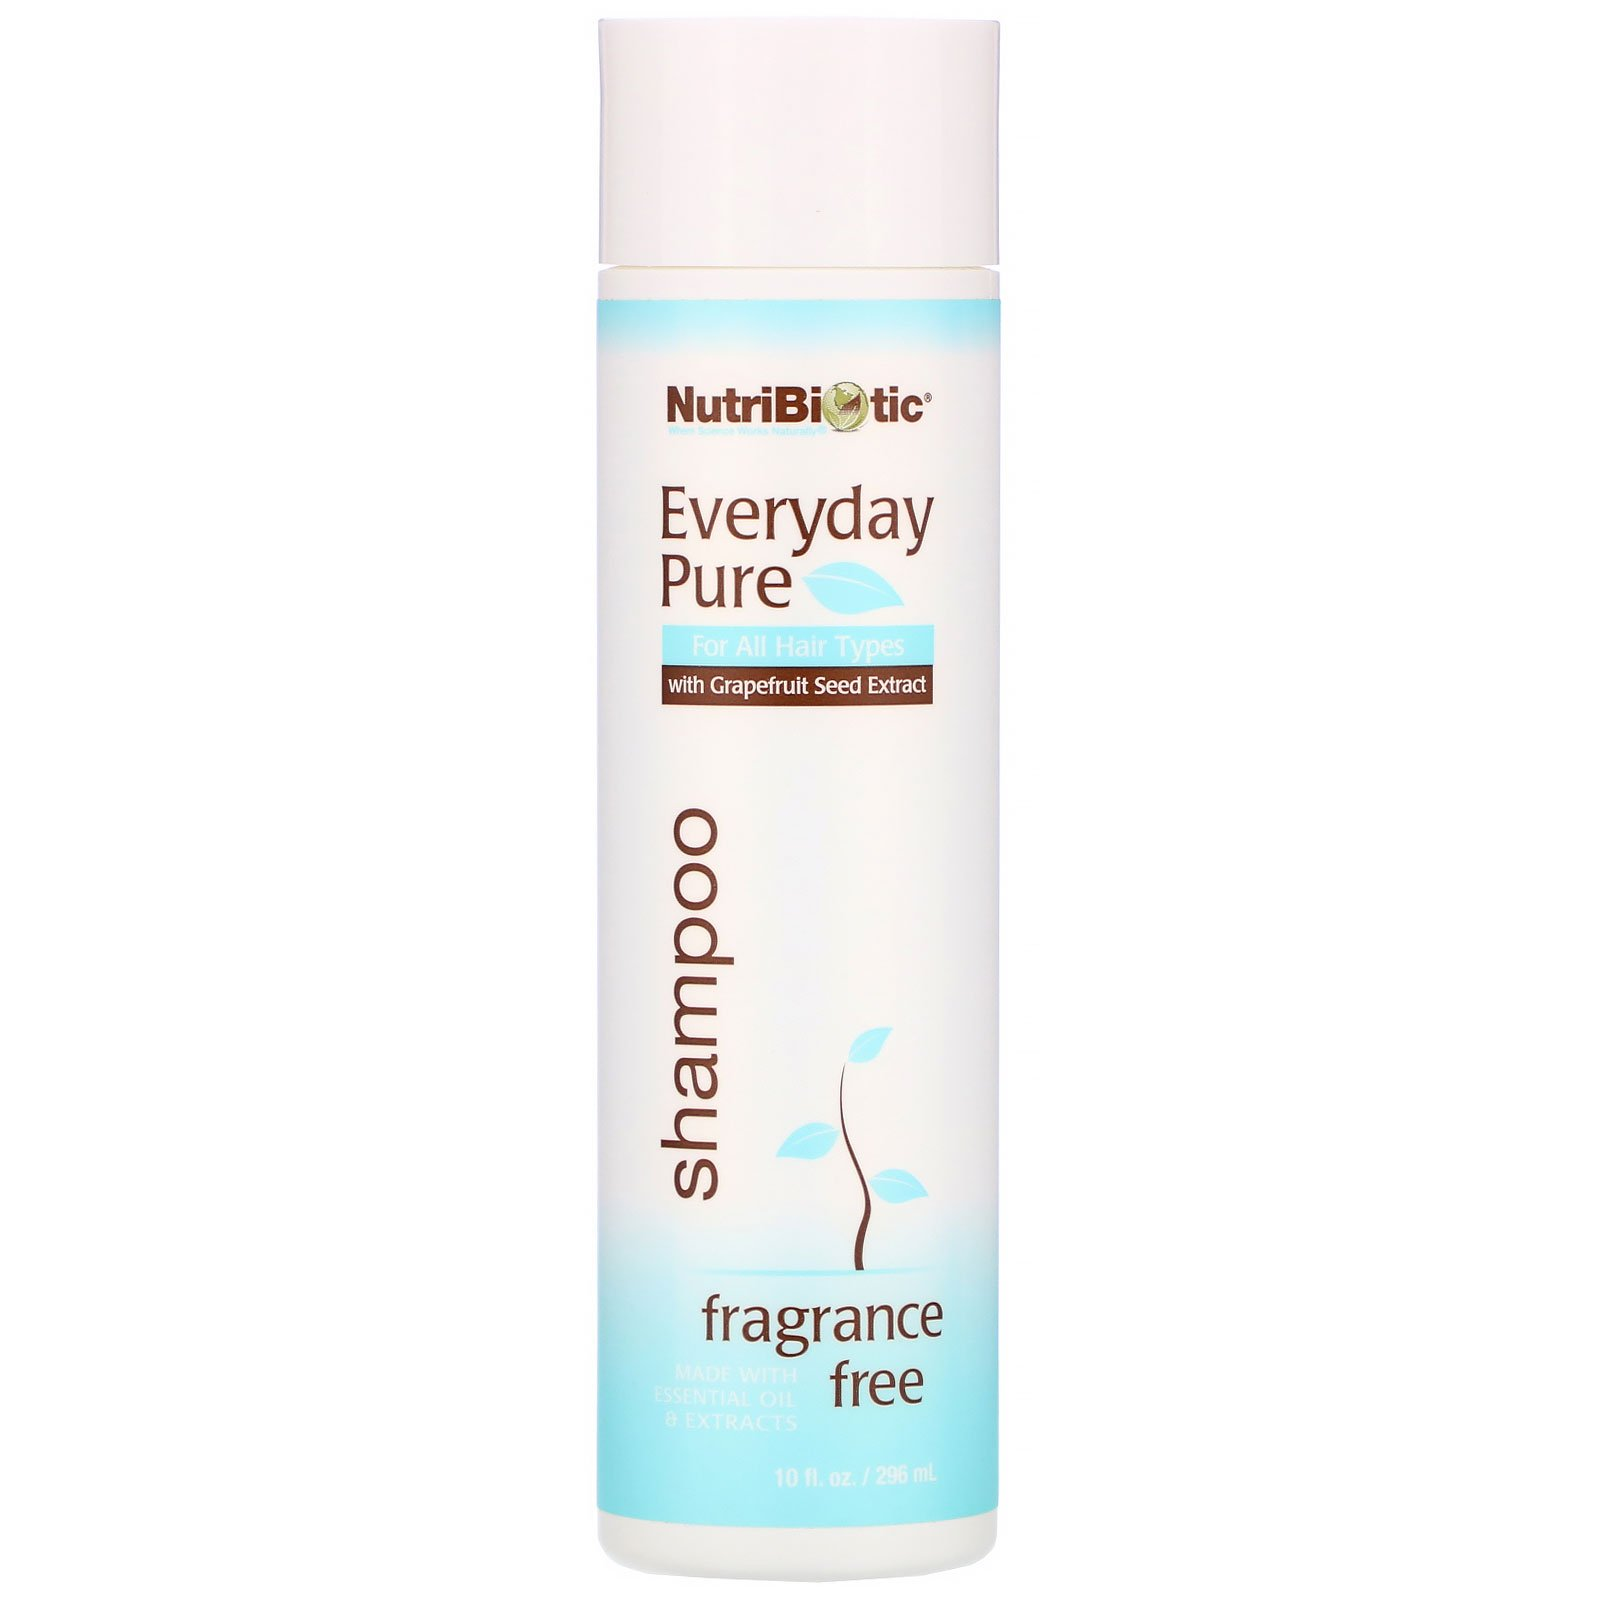 NutriBiotic, Everyday Pure Shampoo, Fragrance Free, 10 fl oz (296 ml)